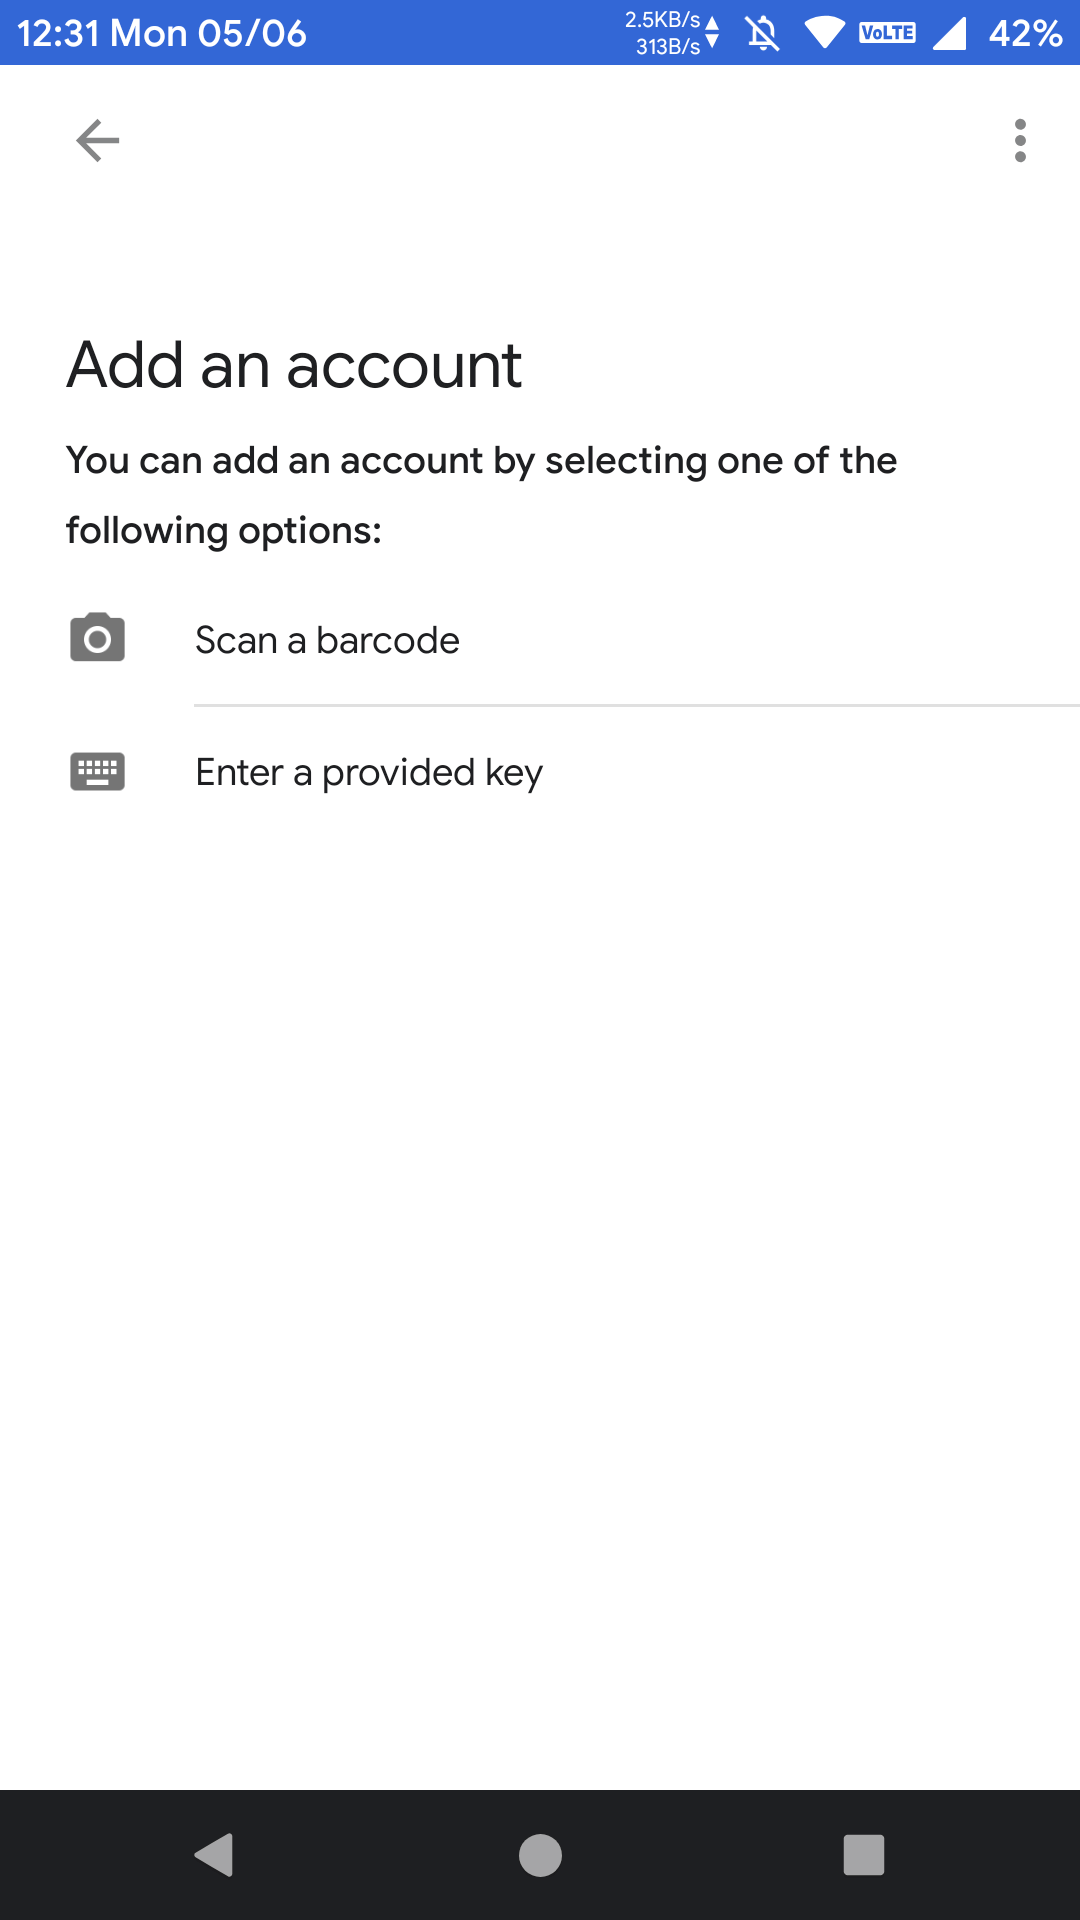 Add an account on google authenticator